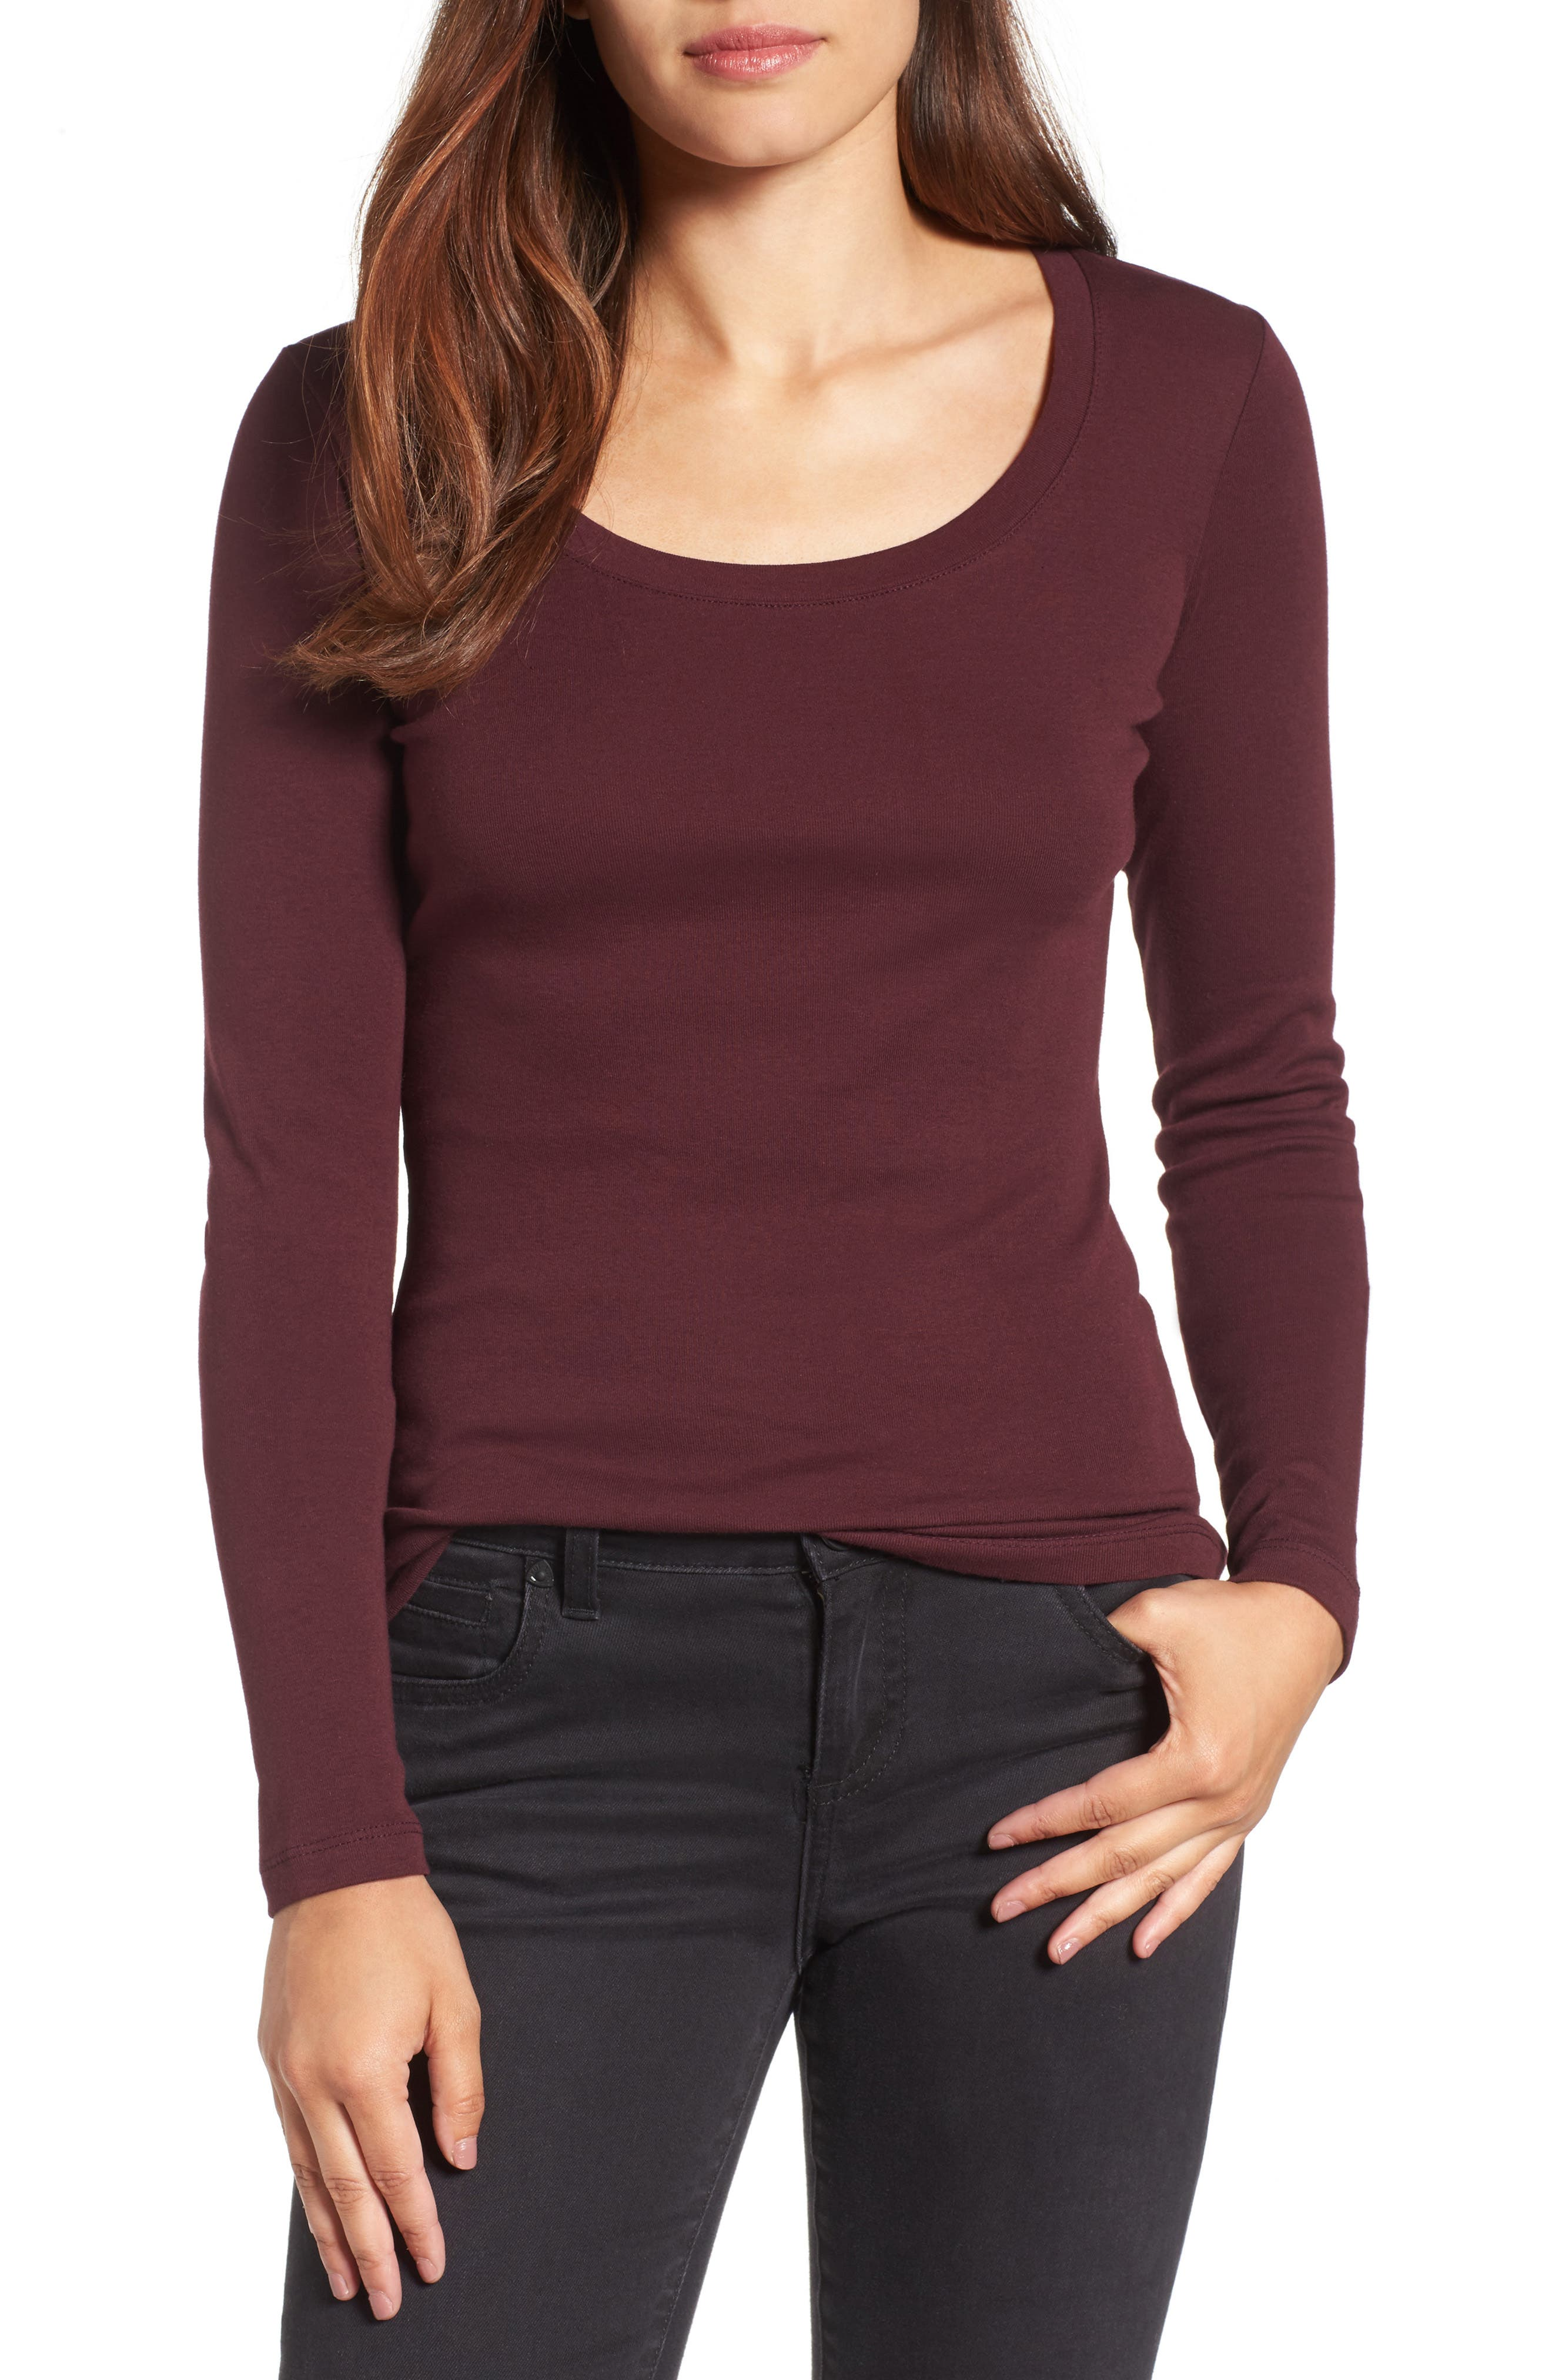 Main Image - Caslon® 'Melody' Long Sleeve Scoop Neck Tee (Regular & Petite)